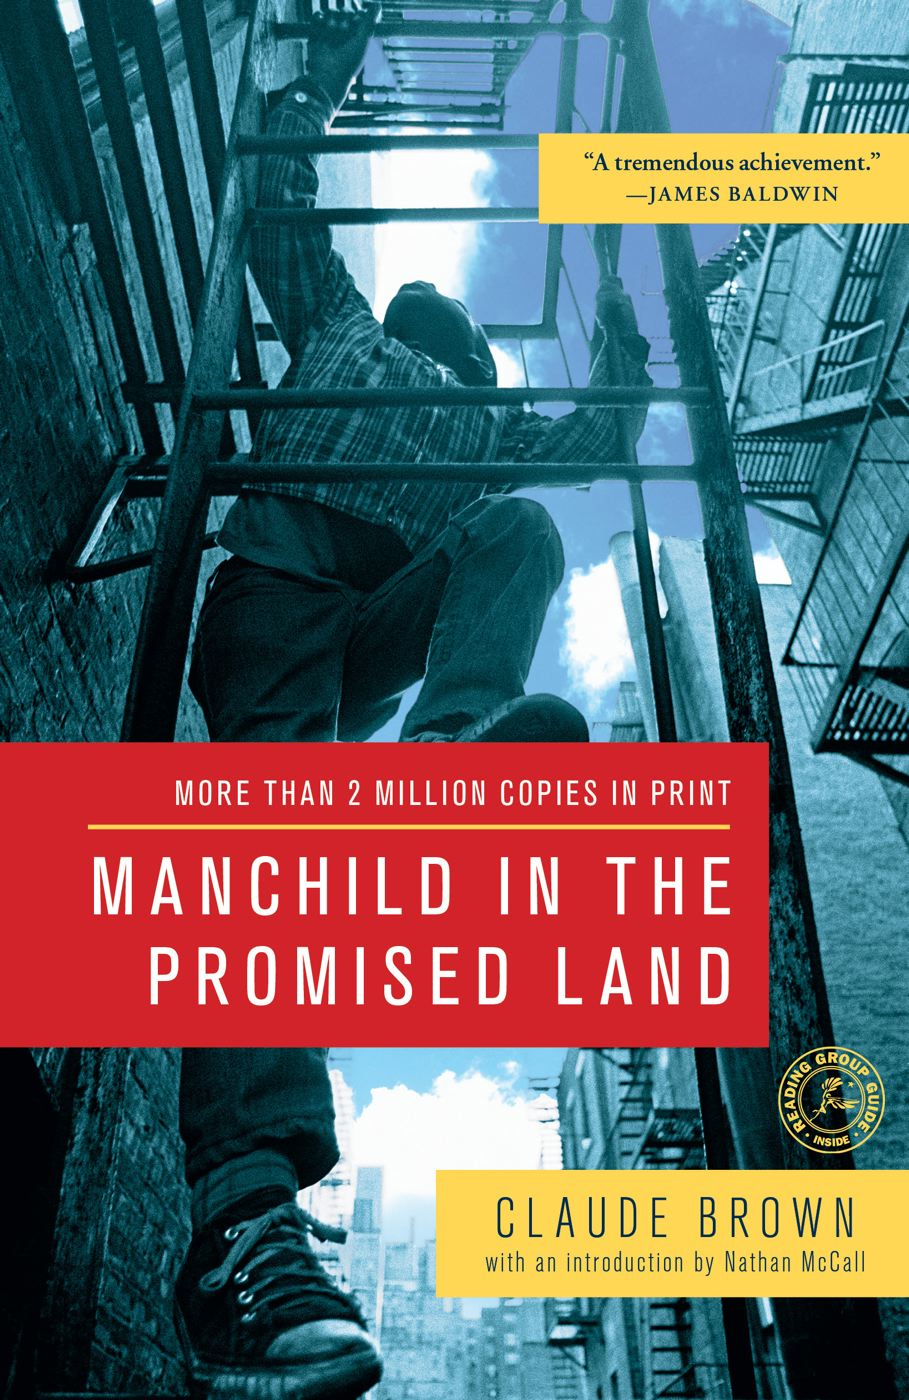 Manchild in the Promised Land By: Claude Brown